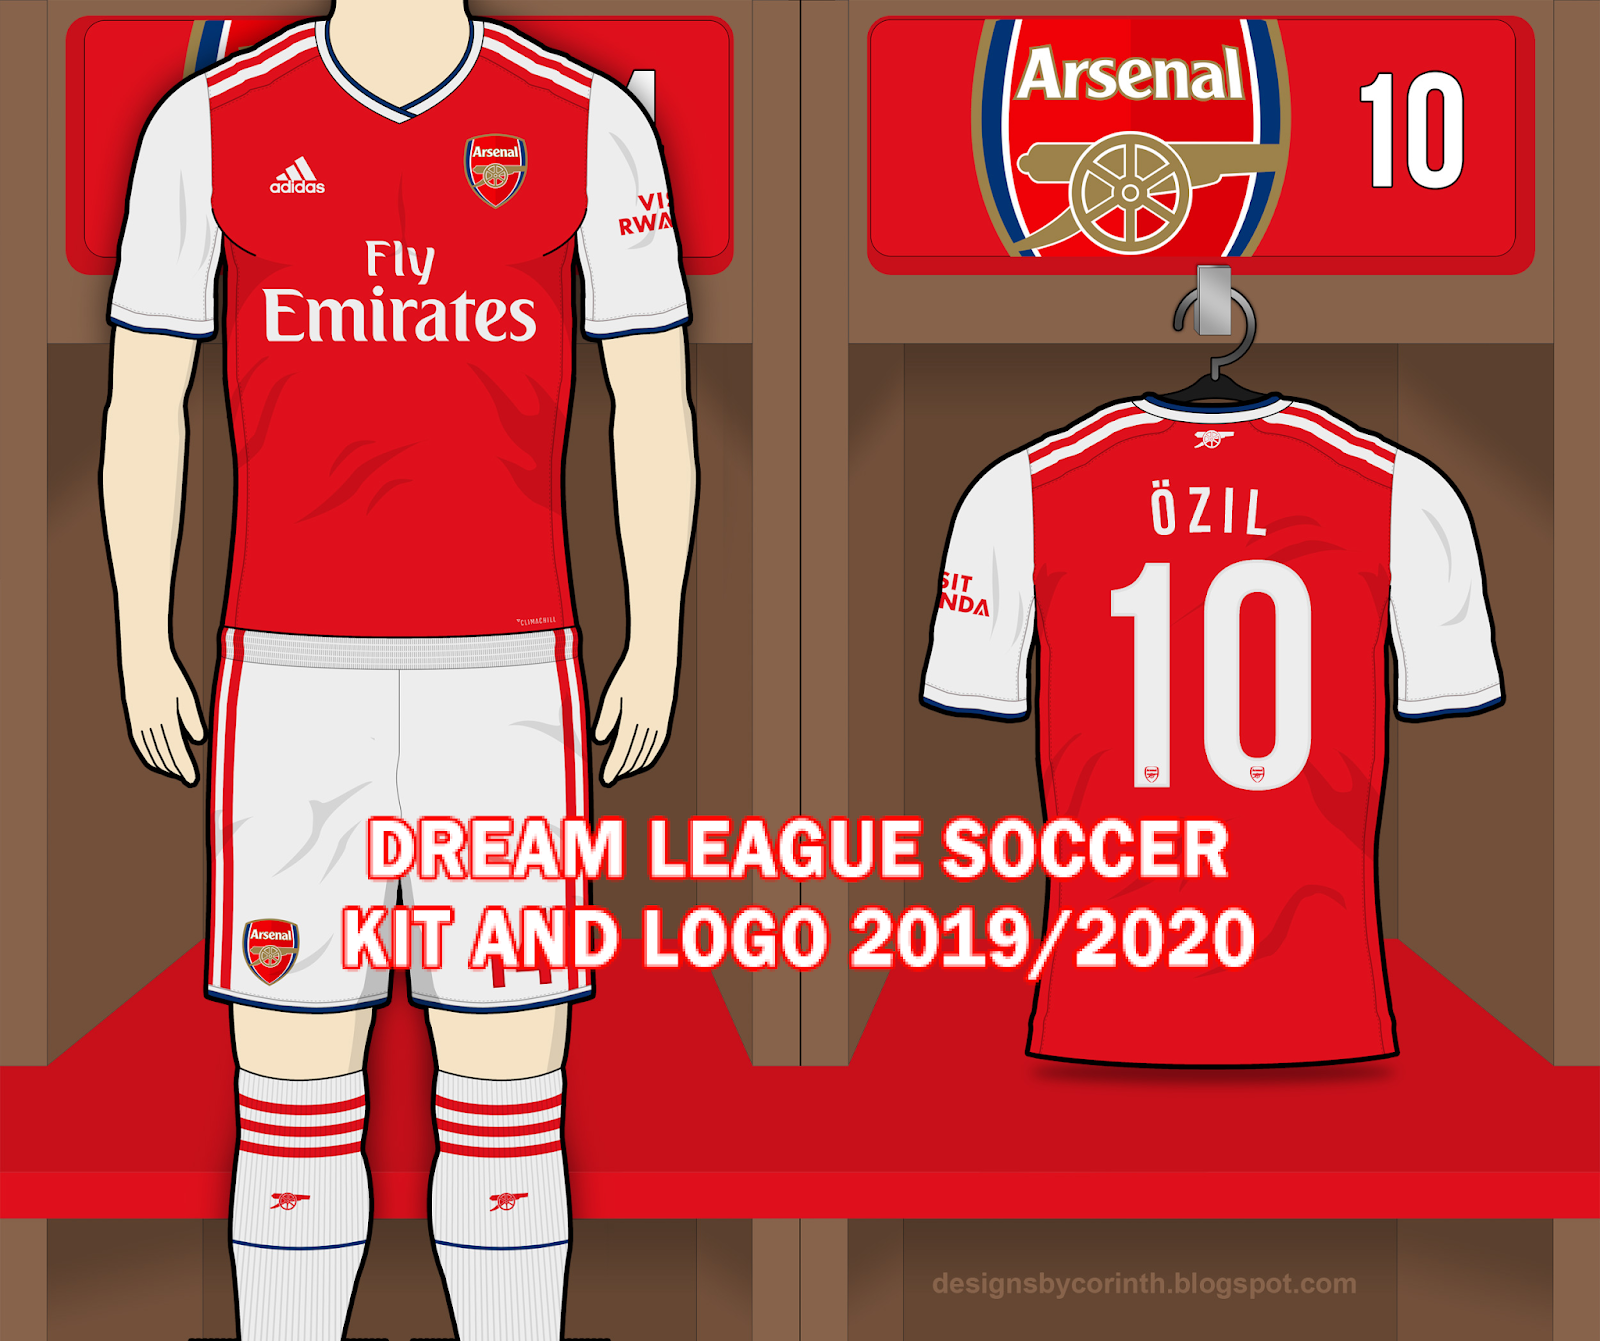 online store 1cbd6 296f8 Arsenal FC 2019/2020 Dream League Soccer Kit and Logo ...